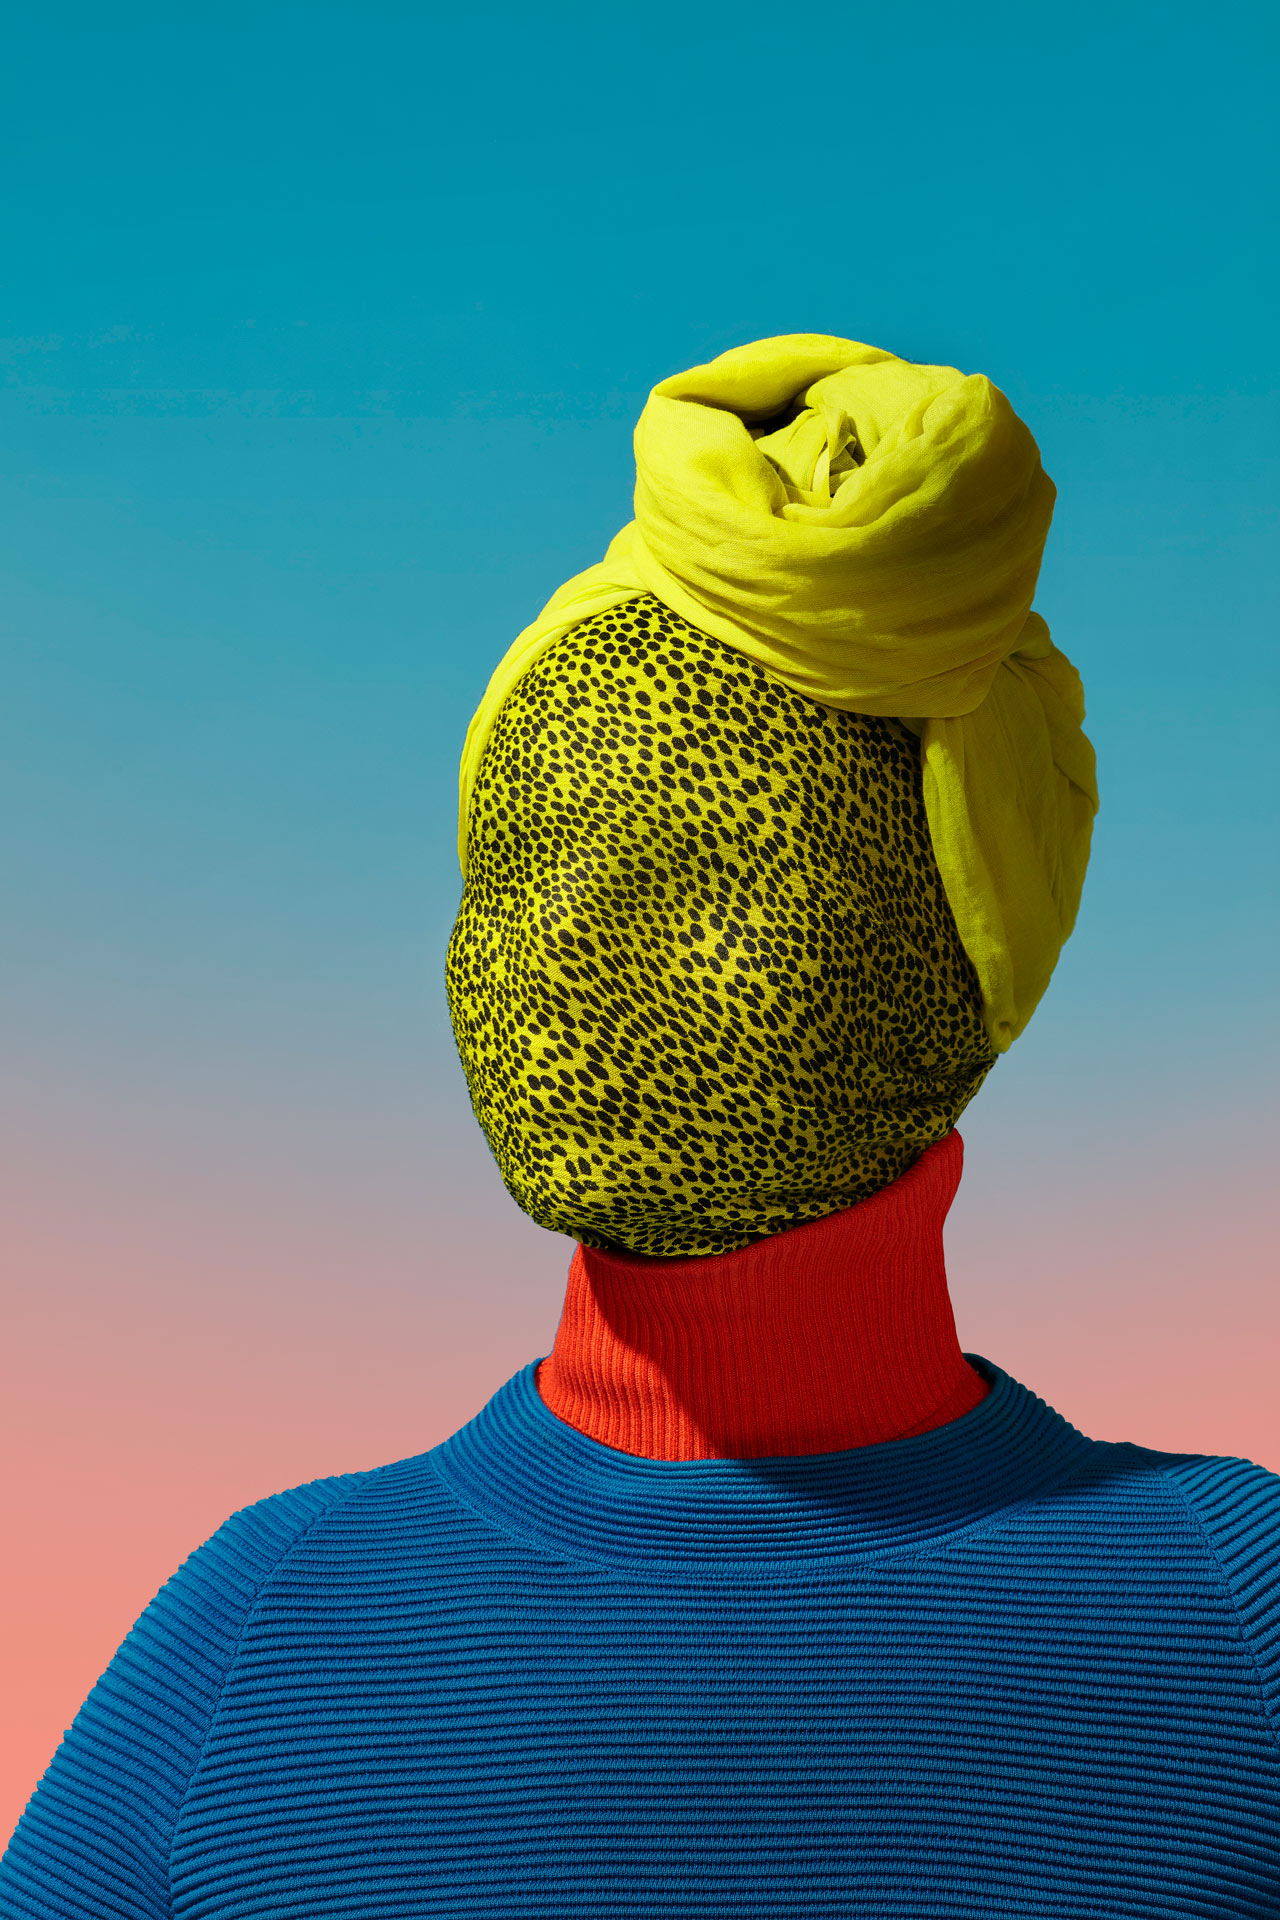 woman face covered in yellow cheetah-printed fabric head scarf blue textured sweater by Simon Duhamel for creative project SAND